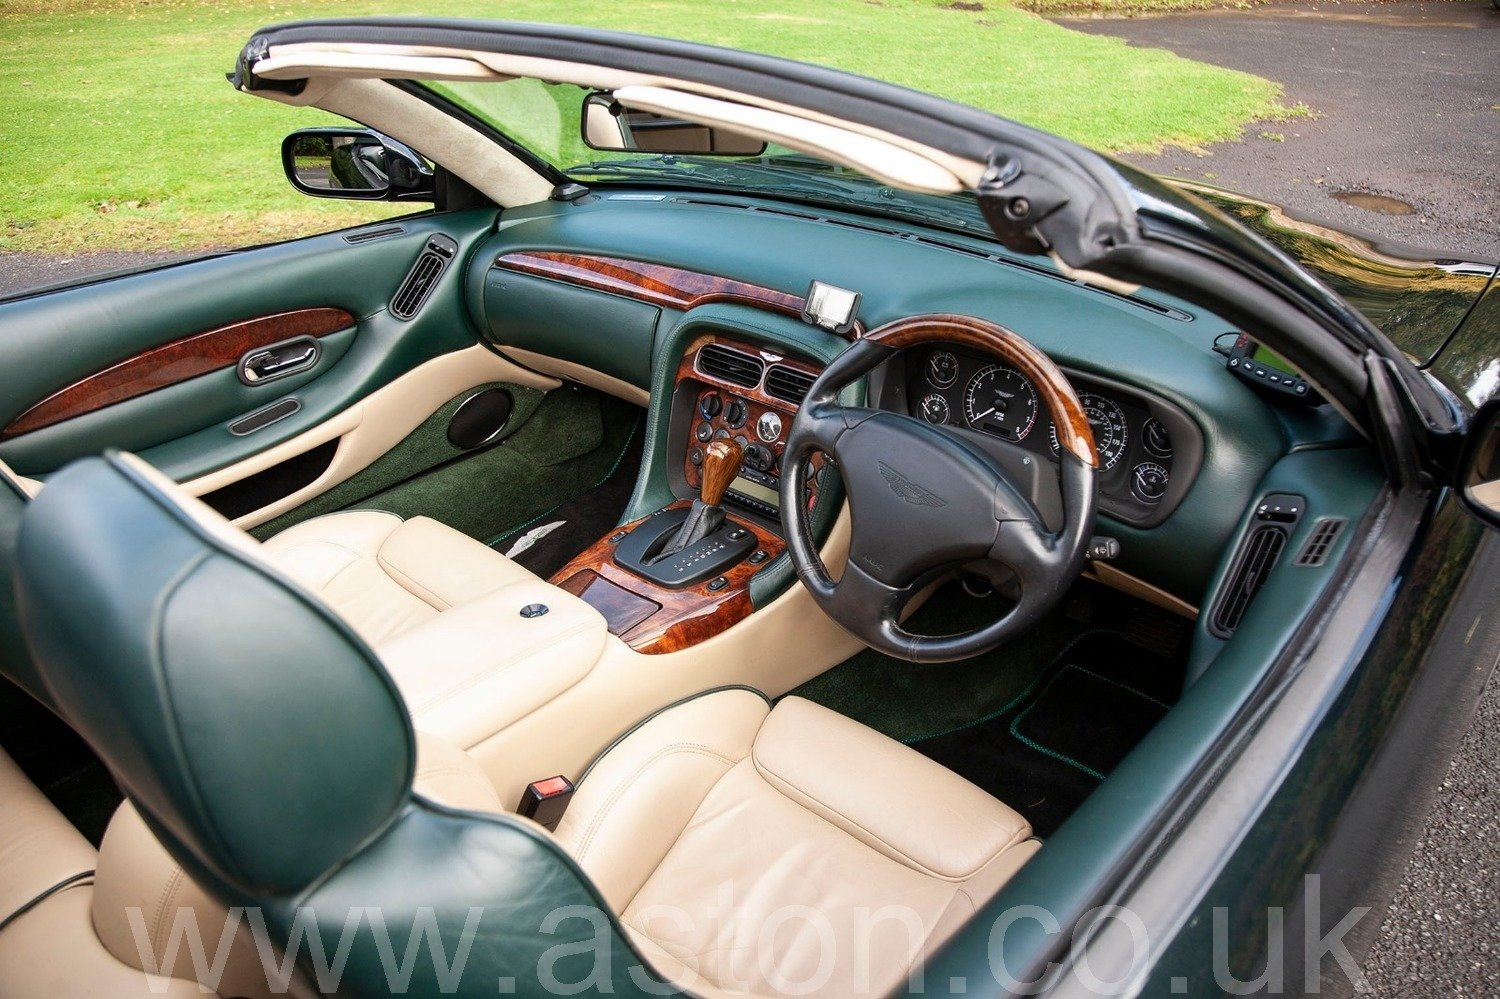 2004 DB7 Vantage Volante  For Sale (picture 3 of 6)